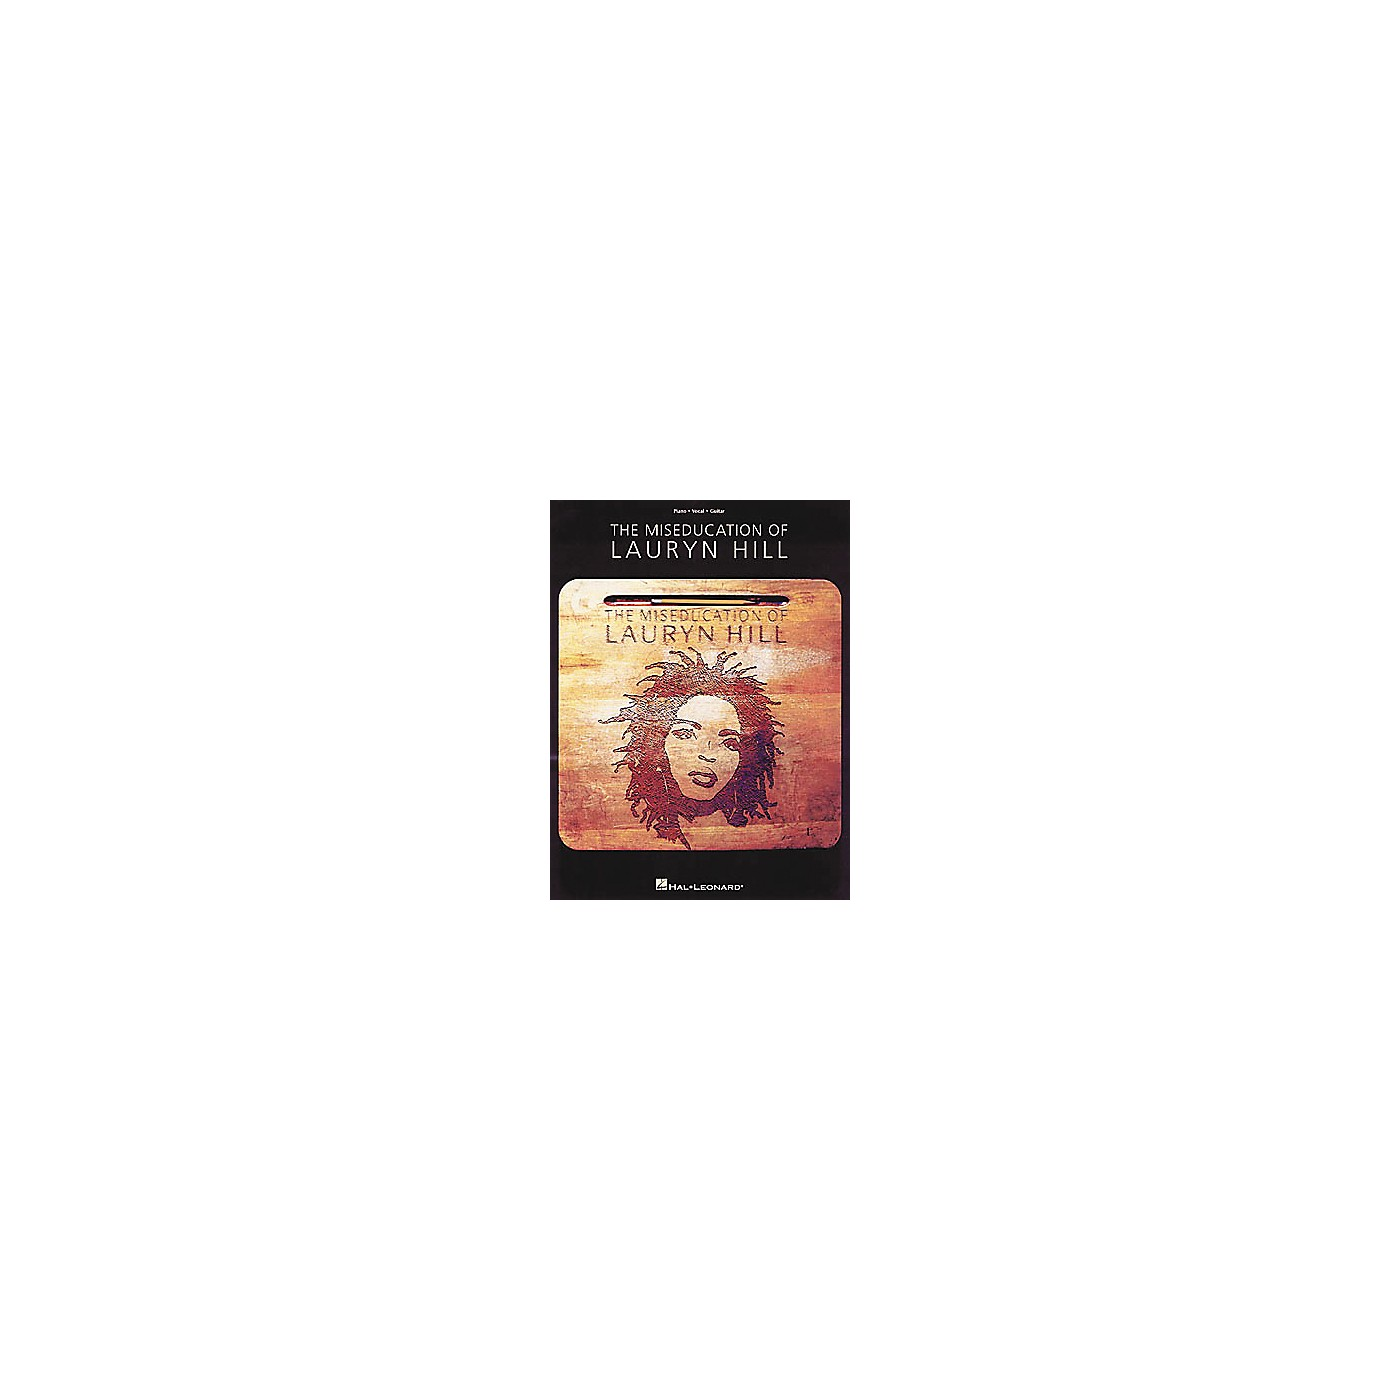 Hal Leonard The Miseducation of Lauryn Hill Piano, Vocal, Guitar Songbook thumbnail